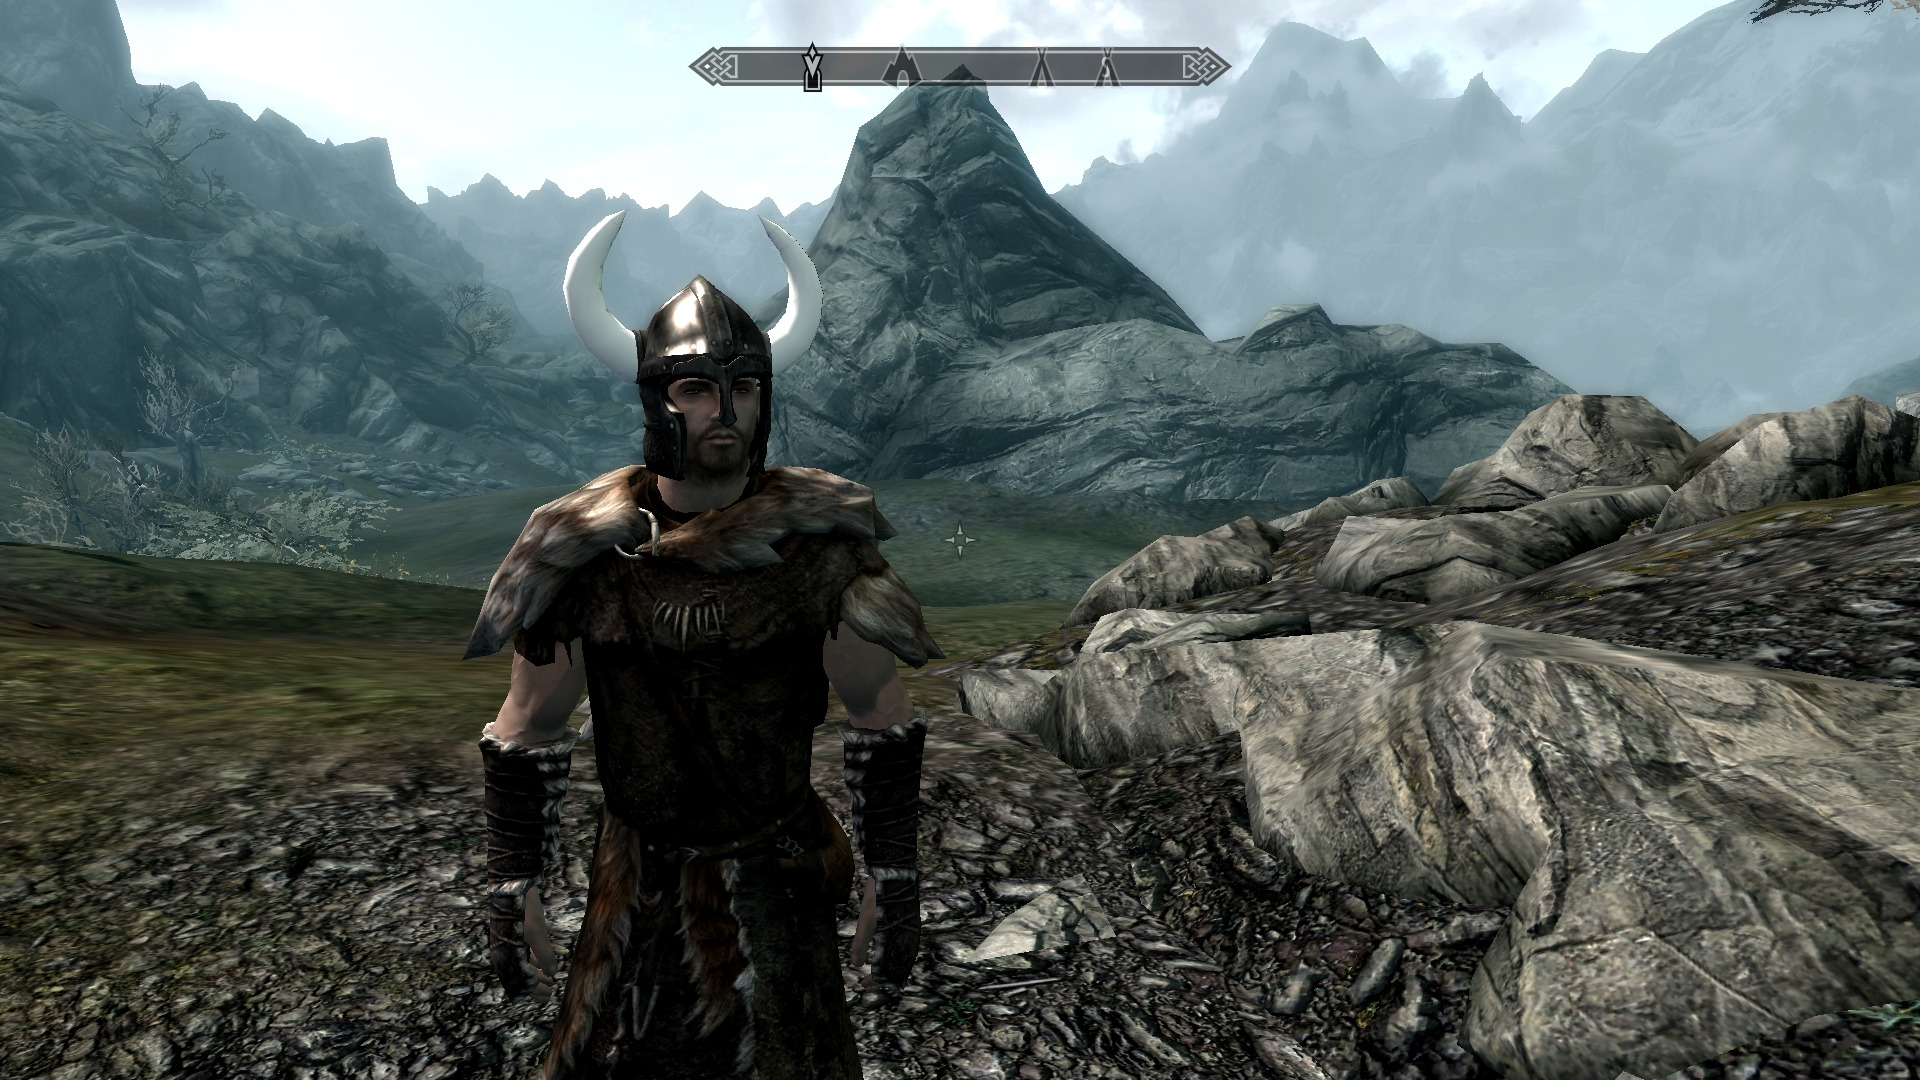 Viking Helmets Pointy at Skyrim Nexus - mods and community | 1920 x 1080 jpeg 565kB